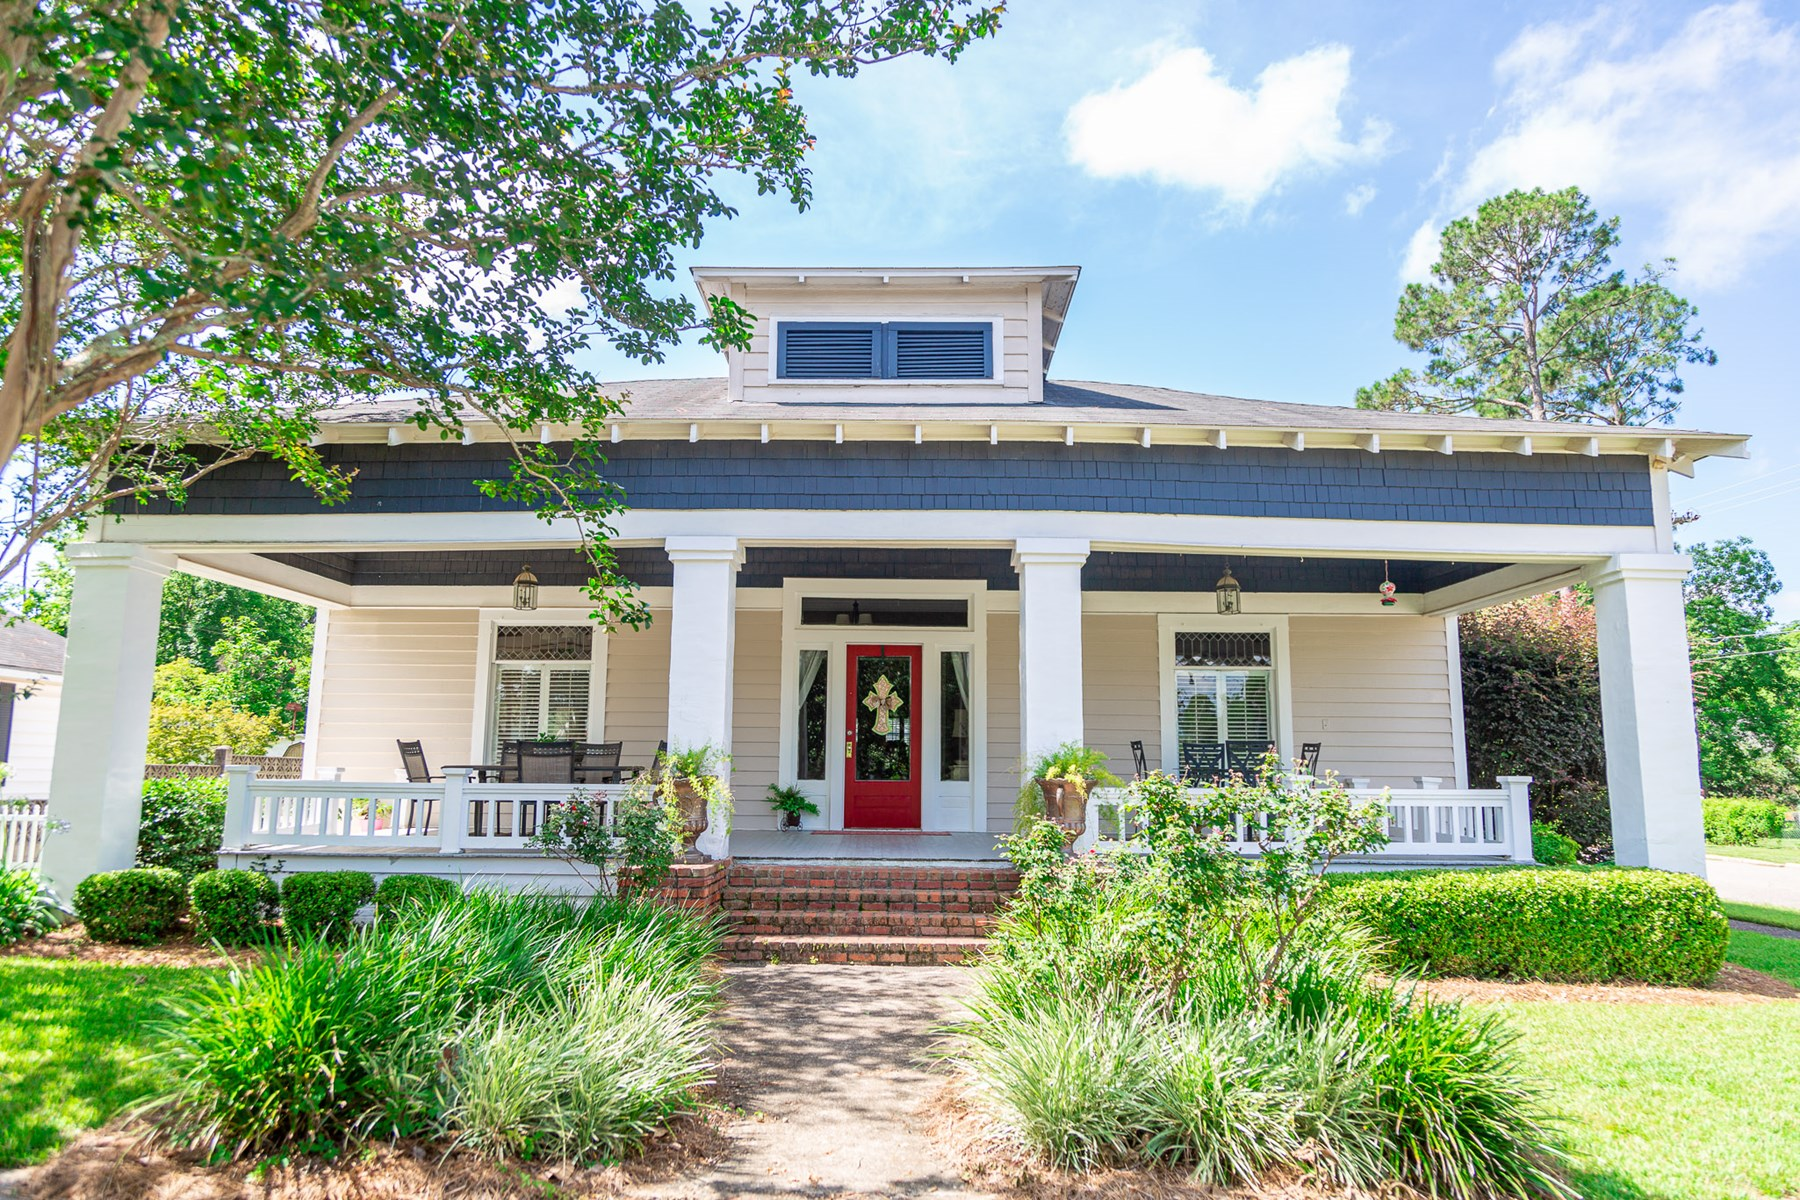 Beautiful Home For Sale In Hatford, AL